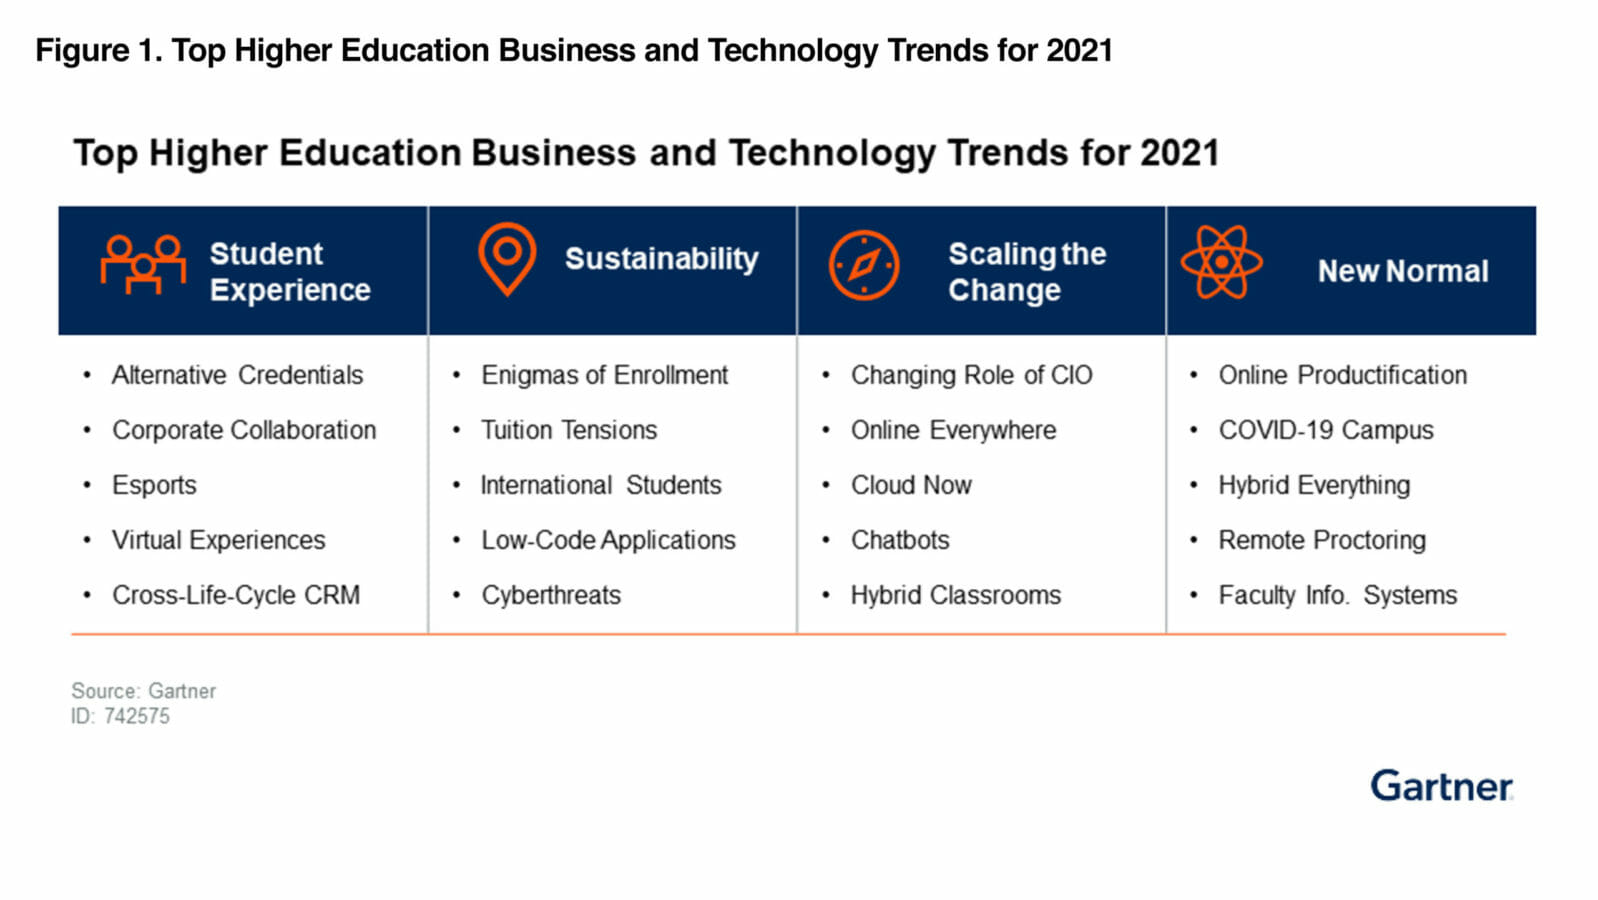 Top Higher Education Business and Technology Trends for 2021 chart